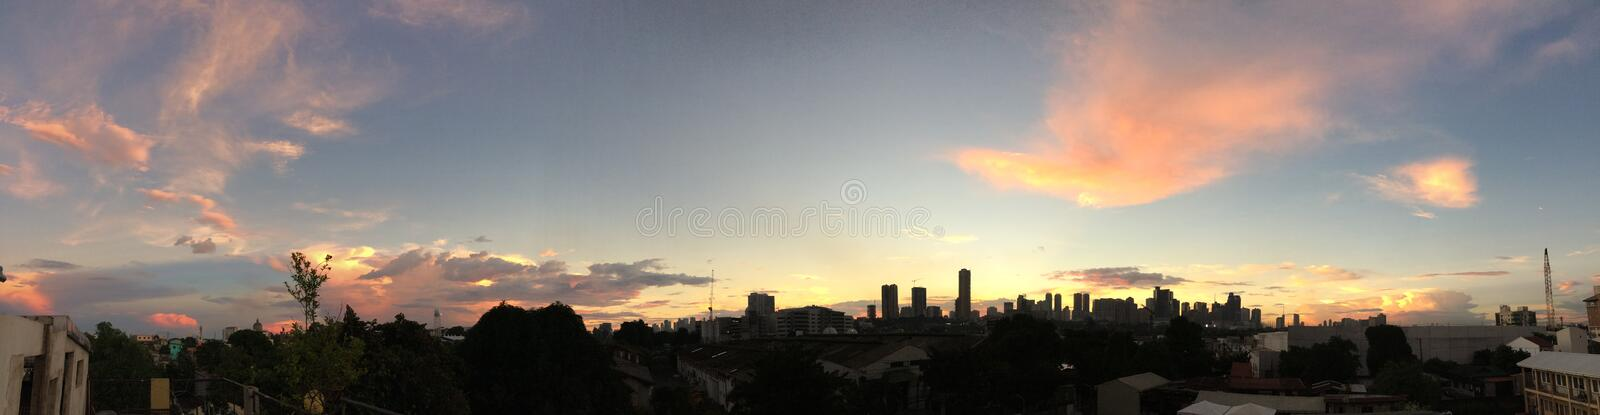 Panoramic shot of manila city buildings under a light blue sky at sunset. A panoramic shot of manila city buildings under a light blue sky at sunset royalty free stock photography